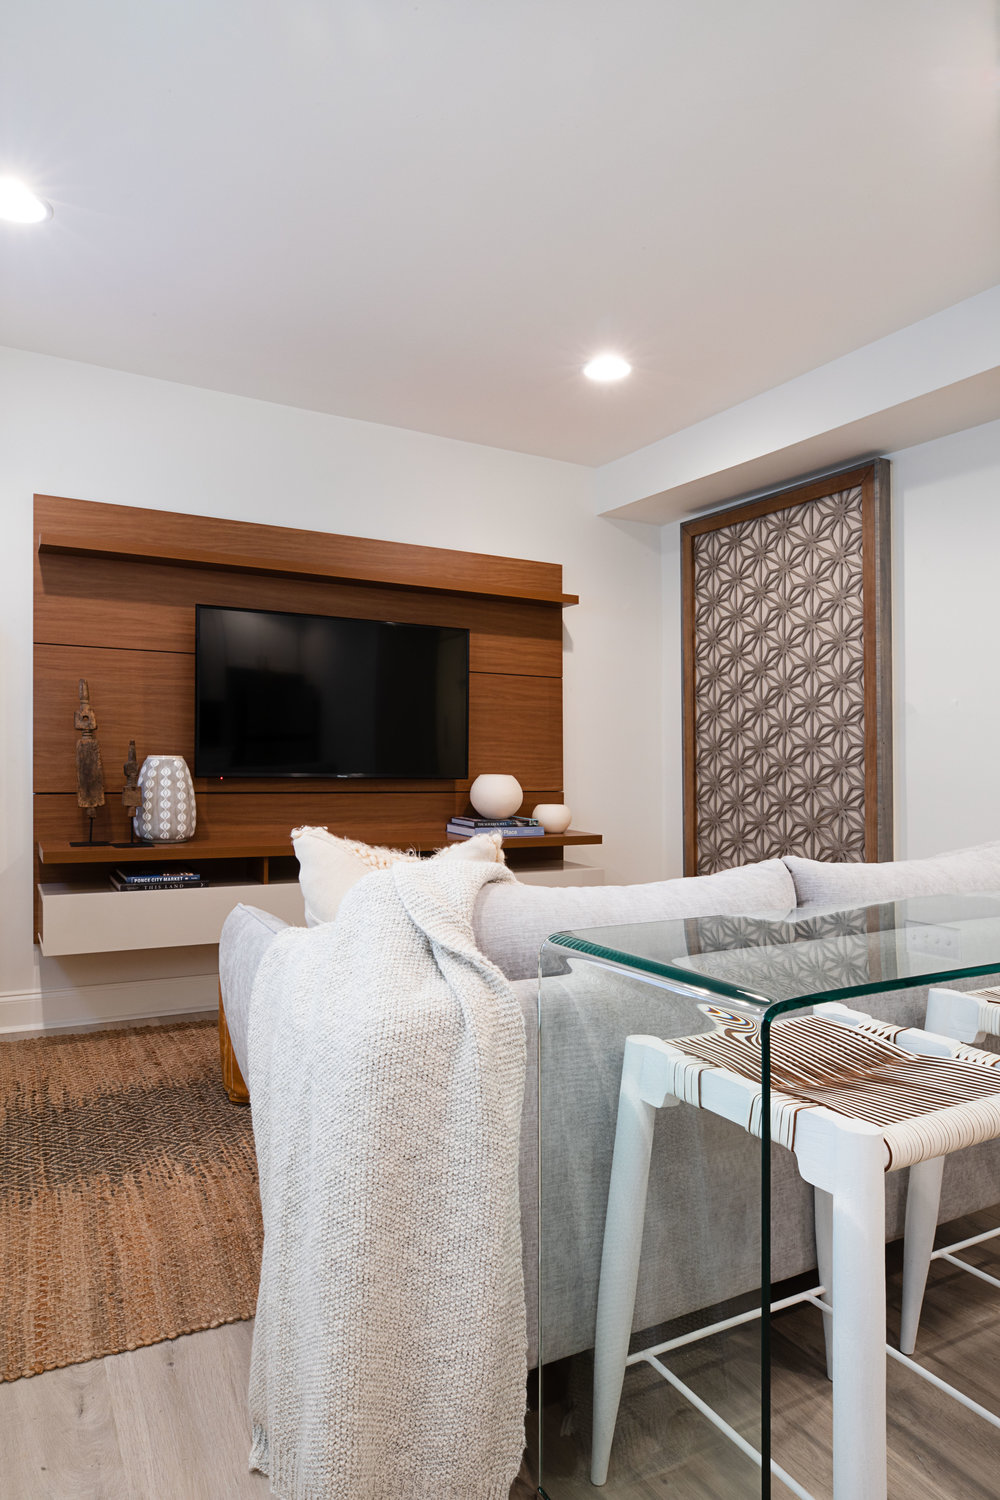 EAST ATLANTA AIRBNB   Organic. Rejuvenating. Tranquil. This newly completed Air BnB offers more than a just a good night's sleep. From the organic features to the modern details this space provides everything you need for a rejuvenating stay.